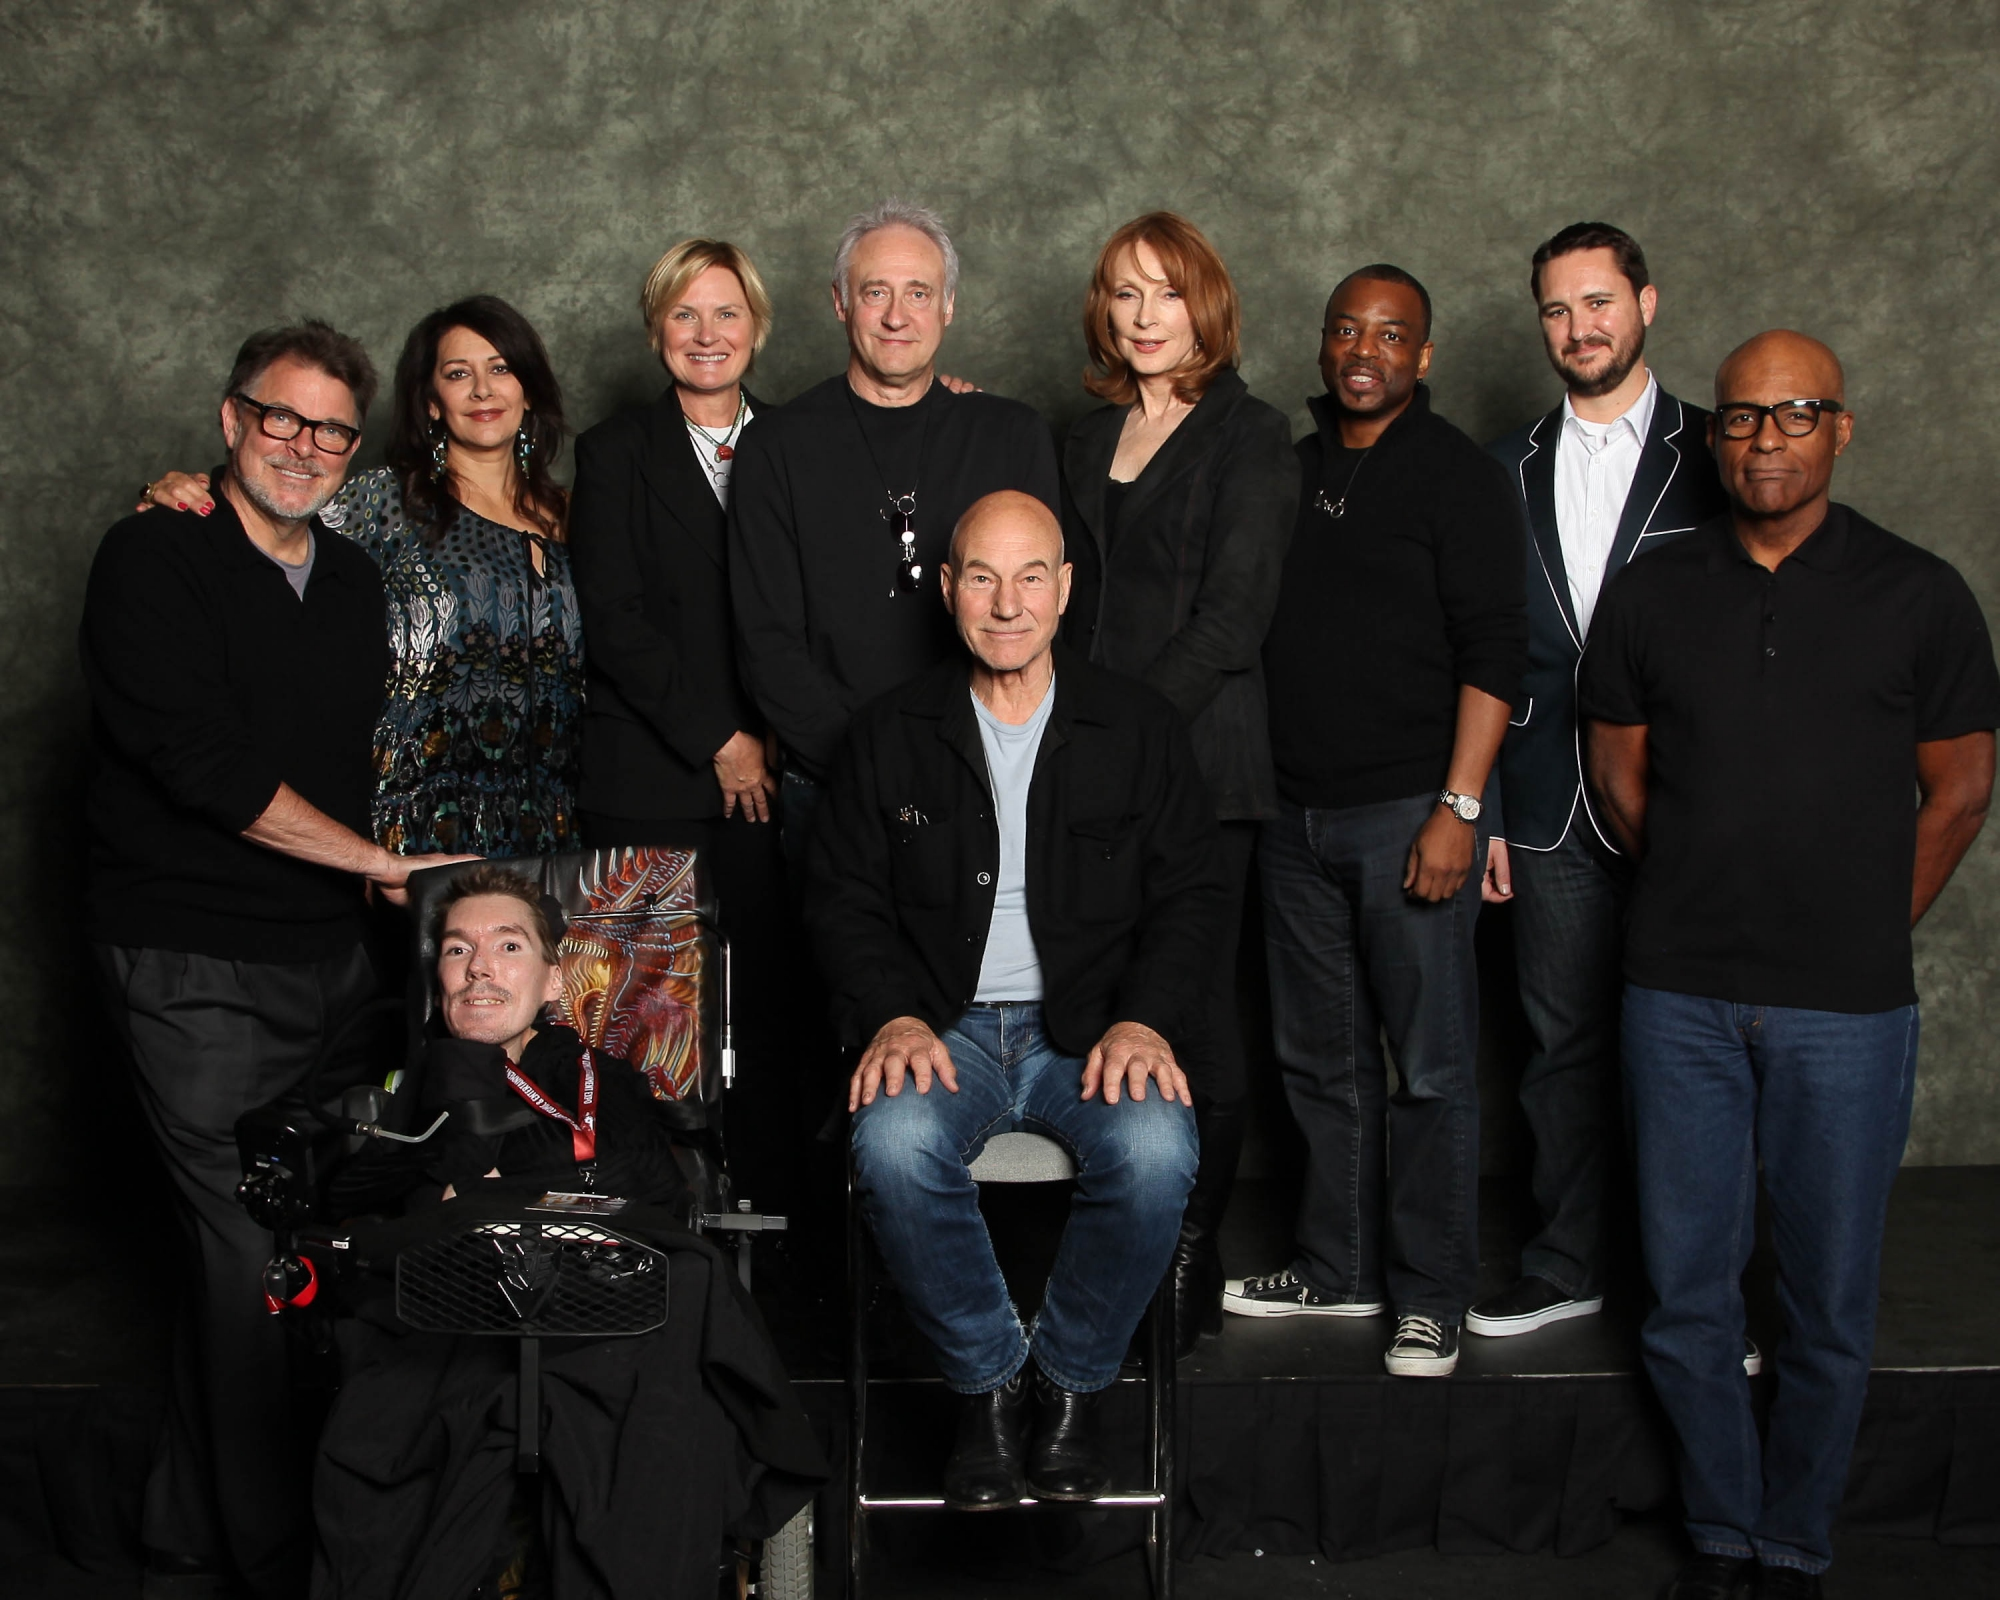 Tom and the Star Trek: TNG cast